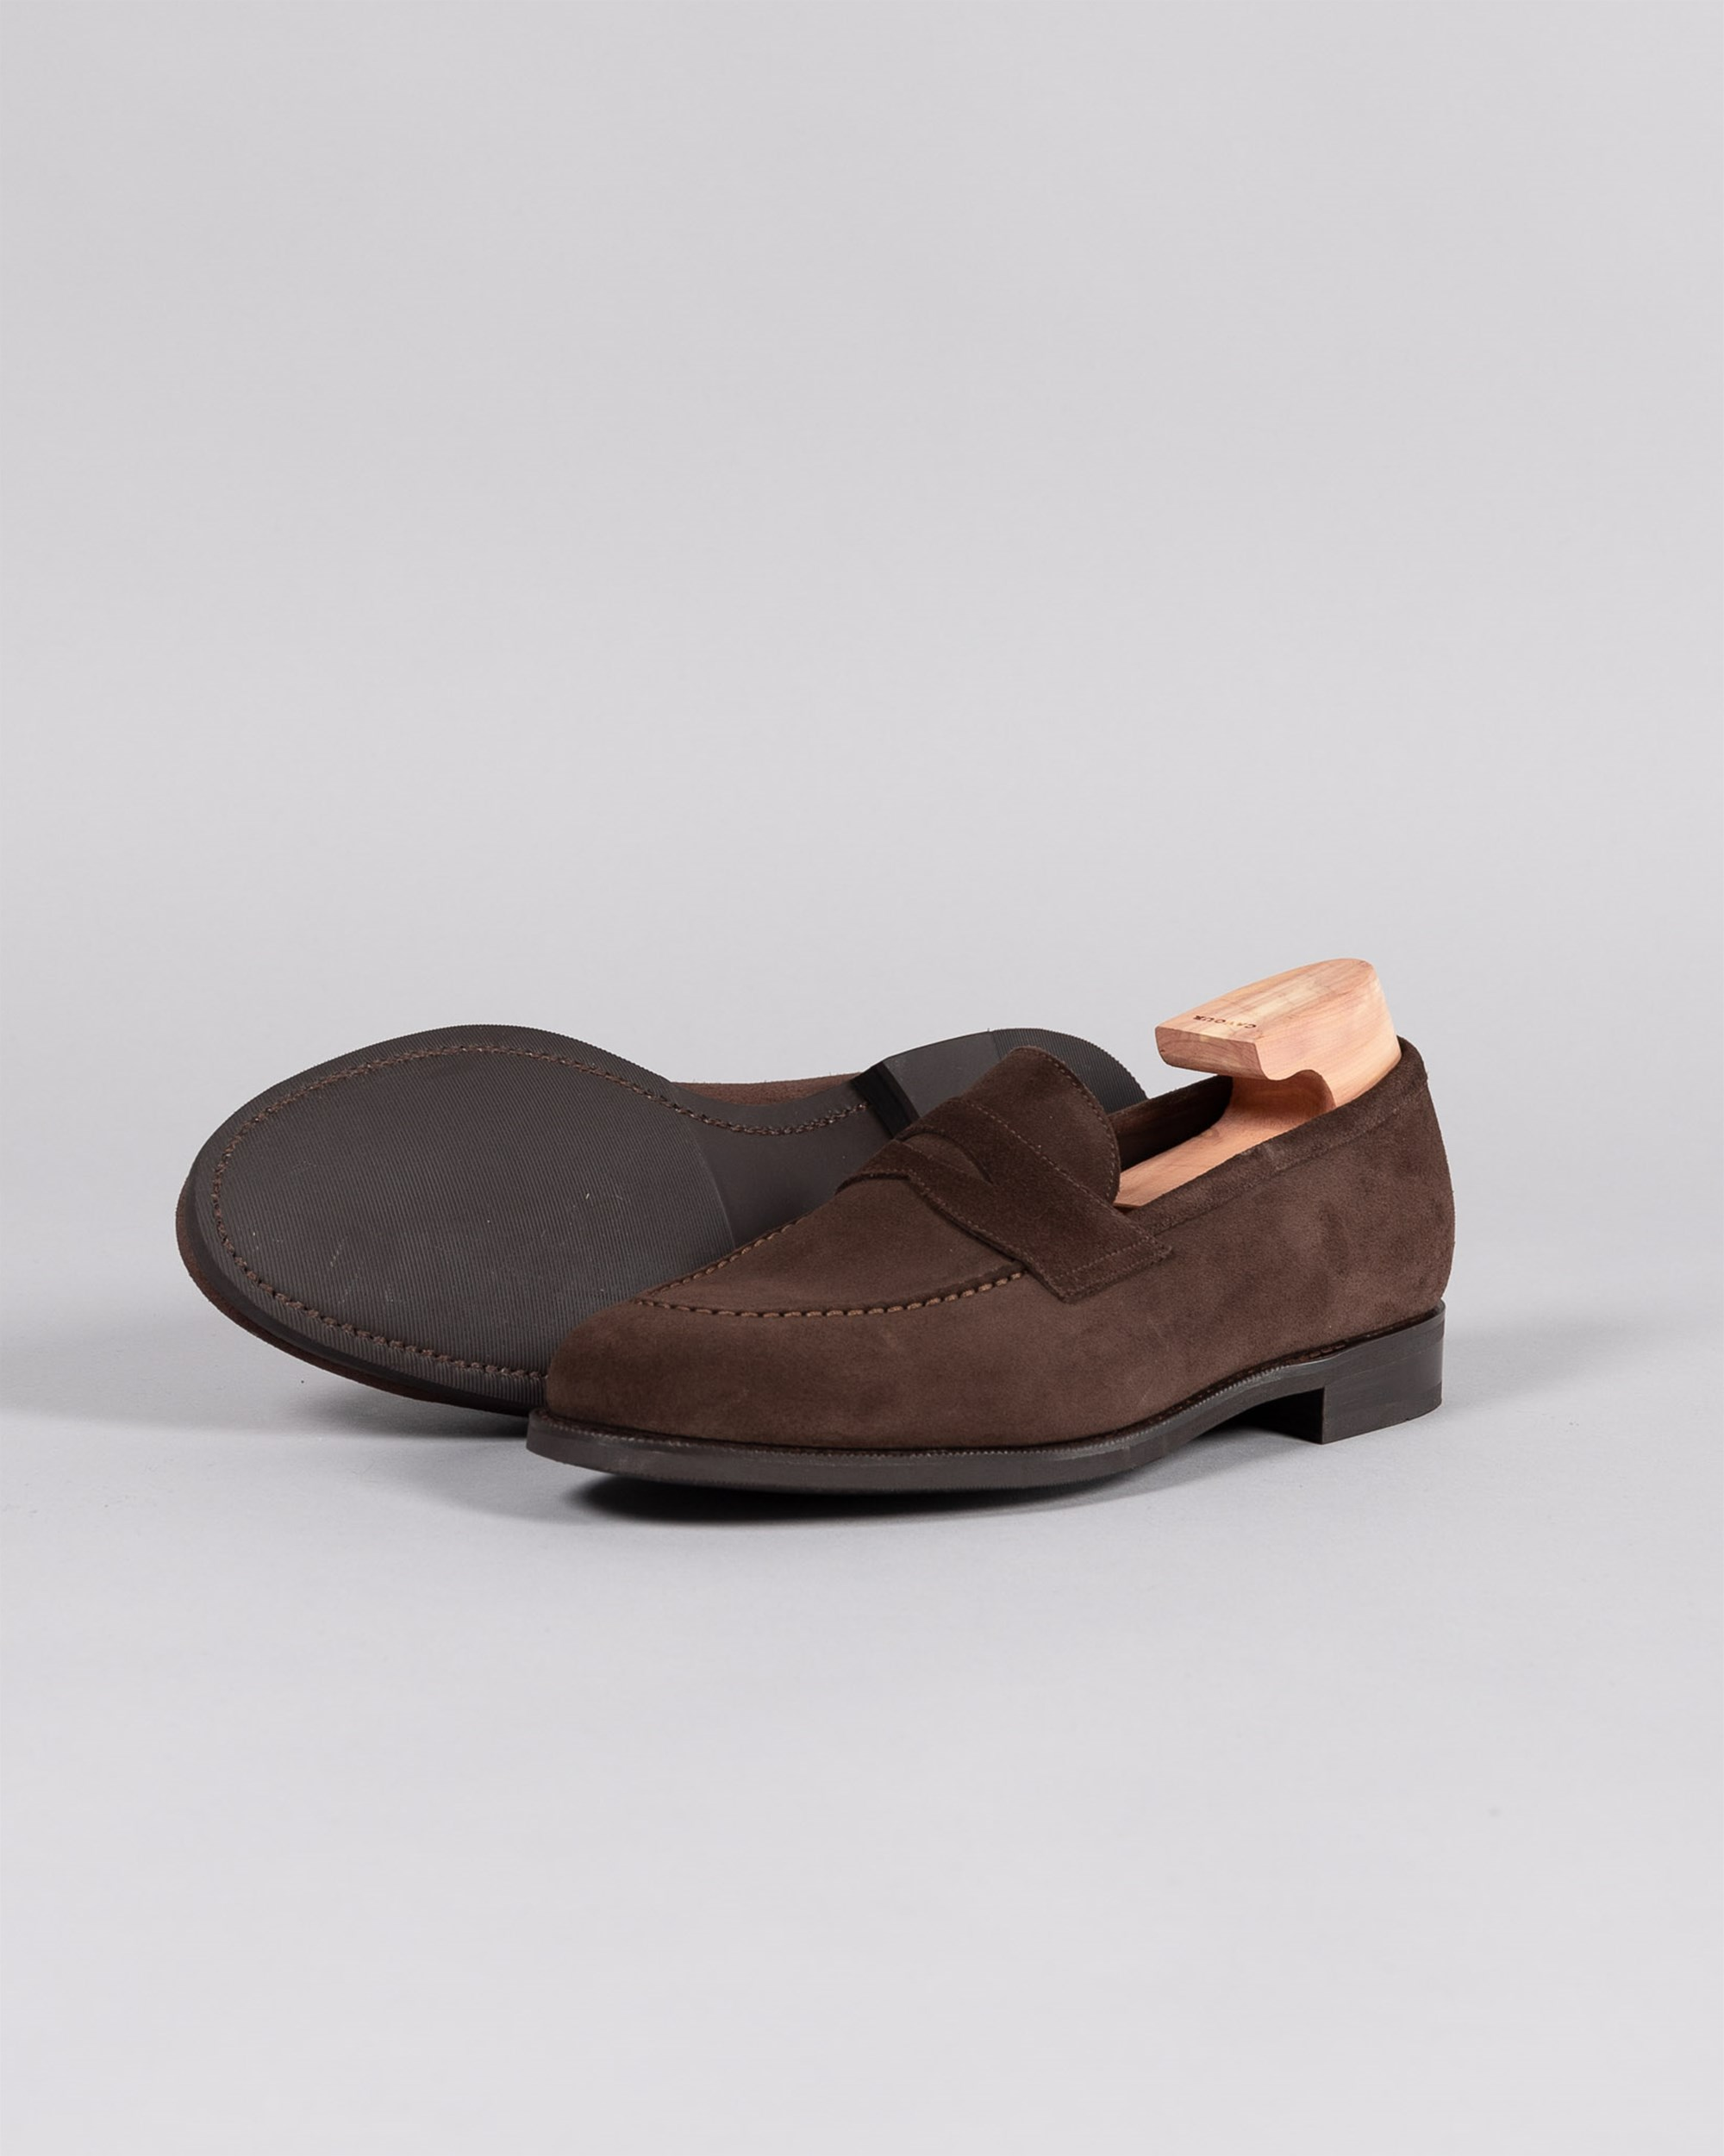 Penny Loafer Suede Rubber Sole